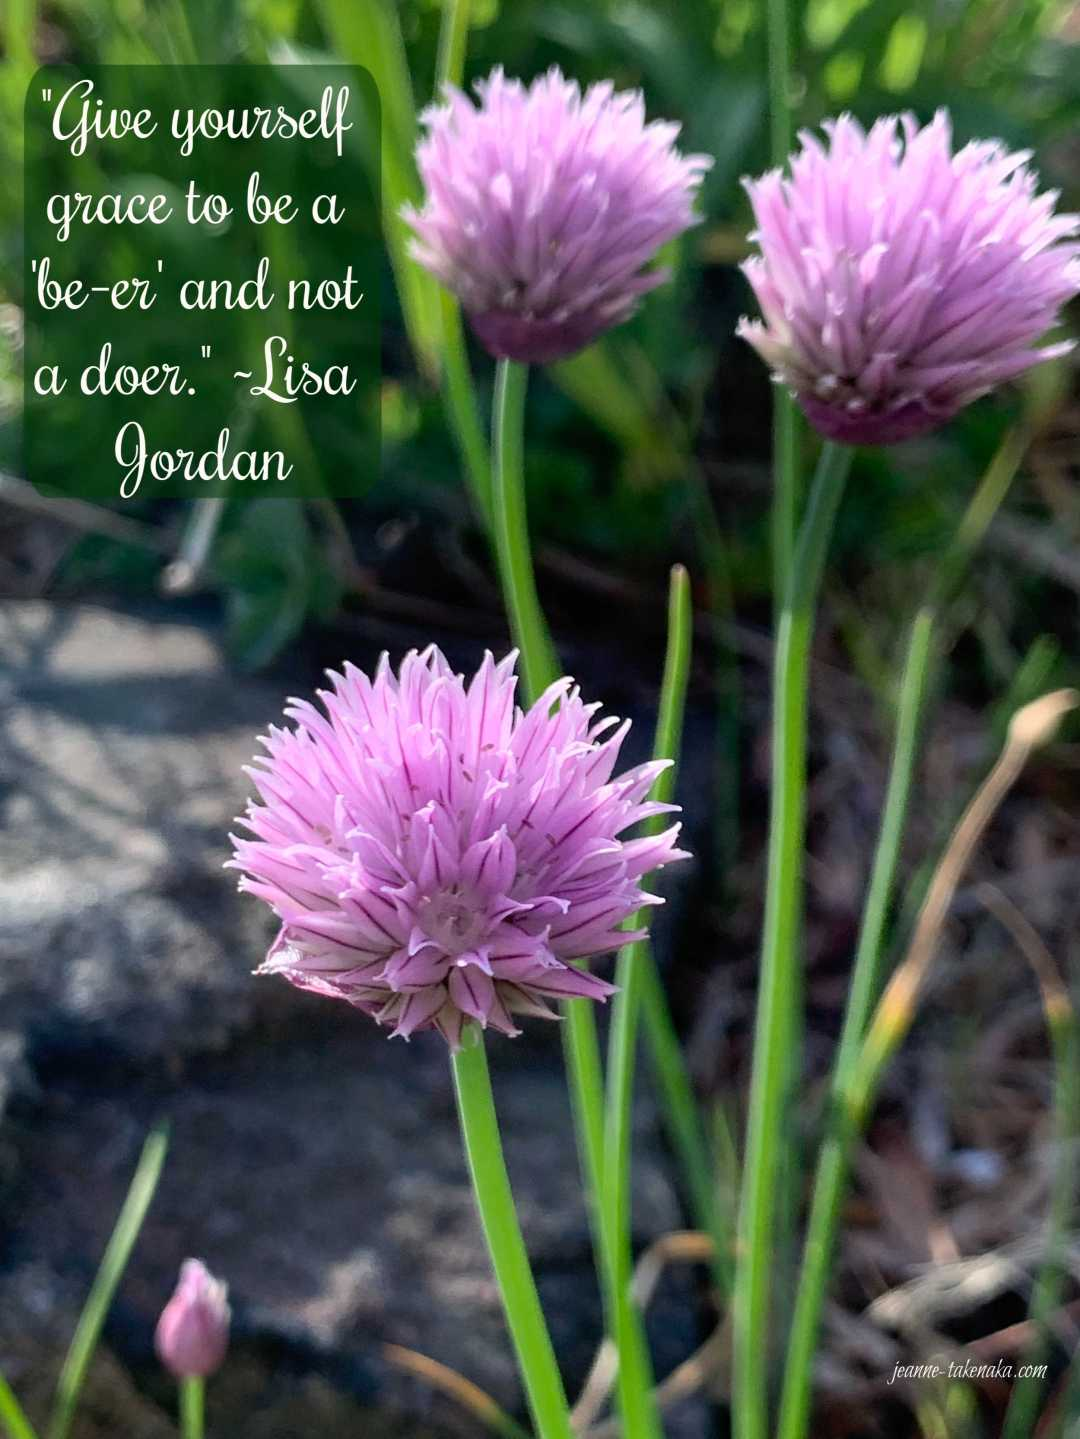 "A meme with the words: ""Give yourself grace to be a 'be-er' and not a doer. ~Lisa Jordan"" on a back drop with purple flowers and green grasses"